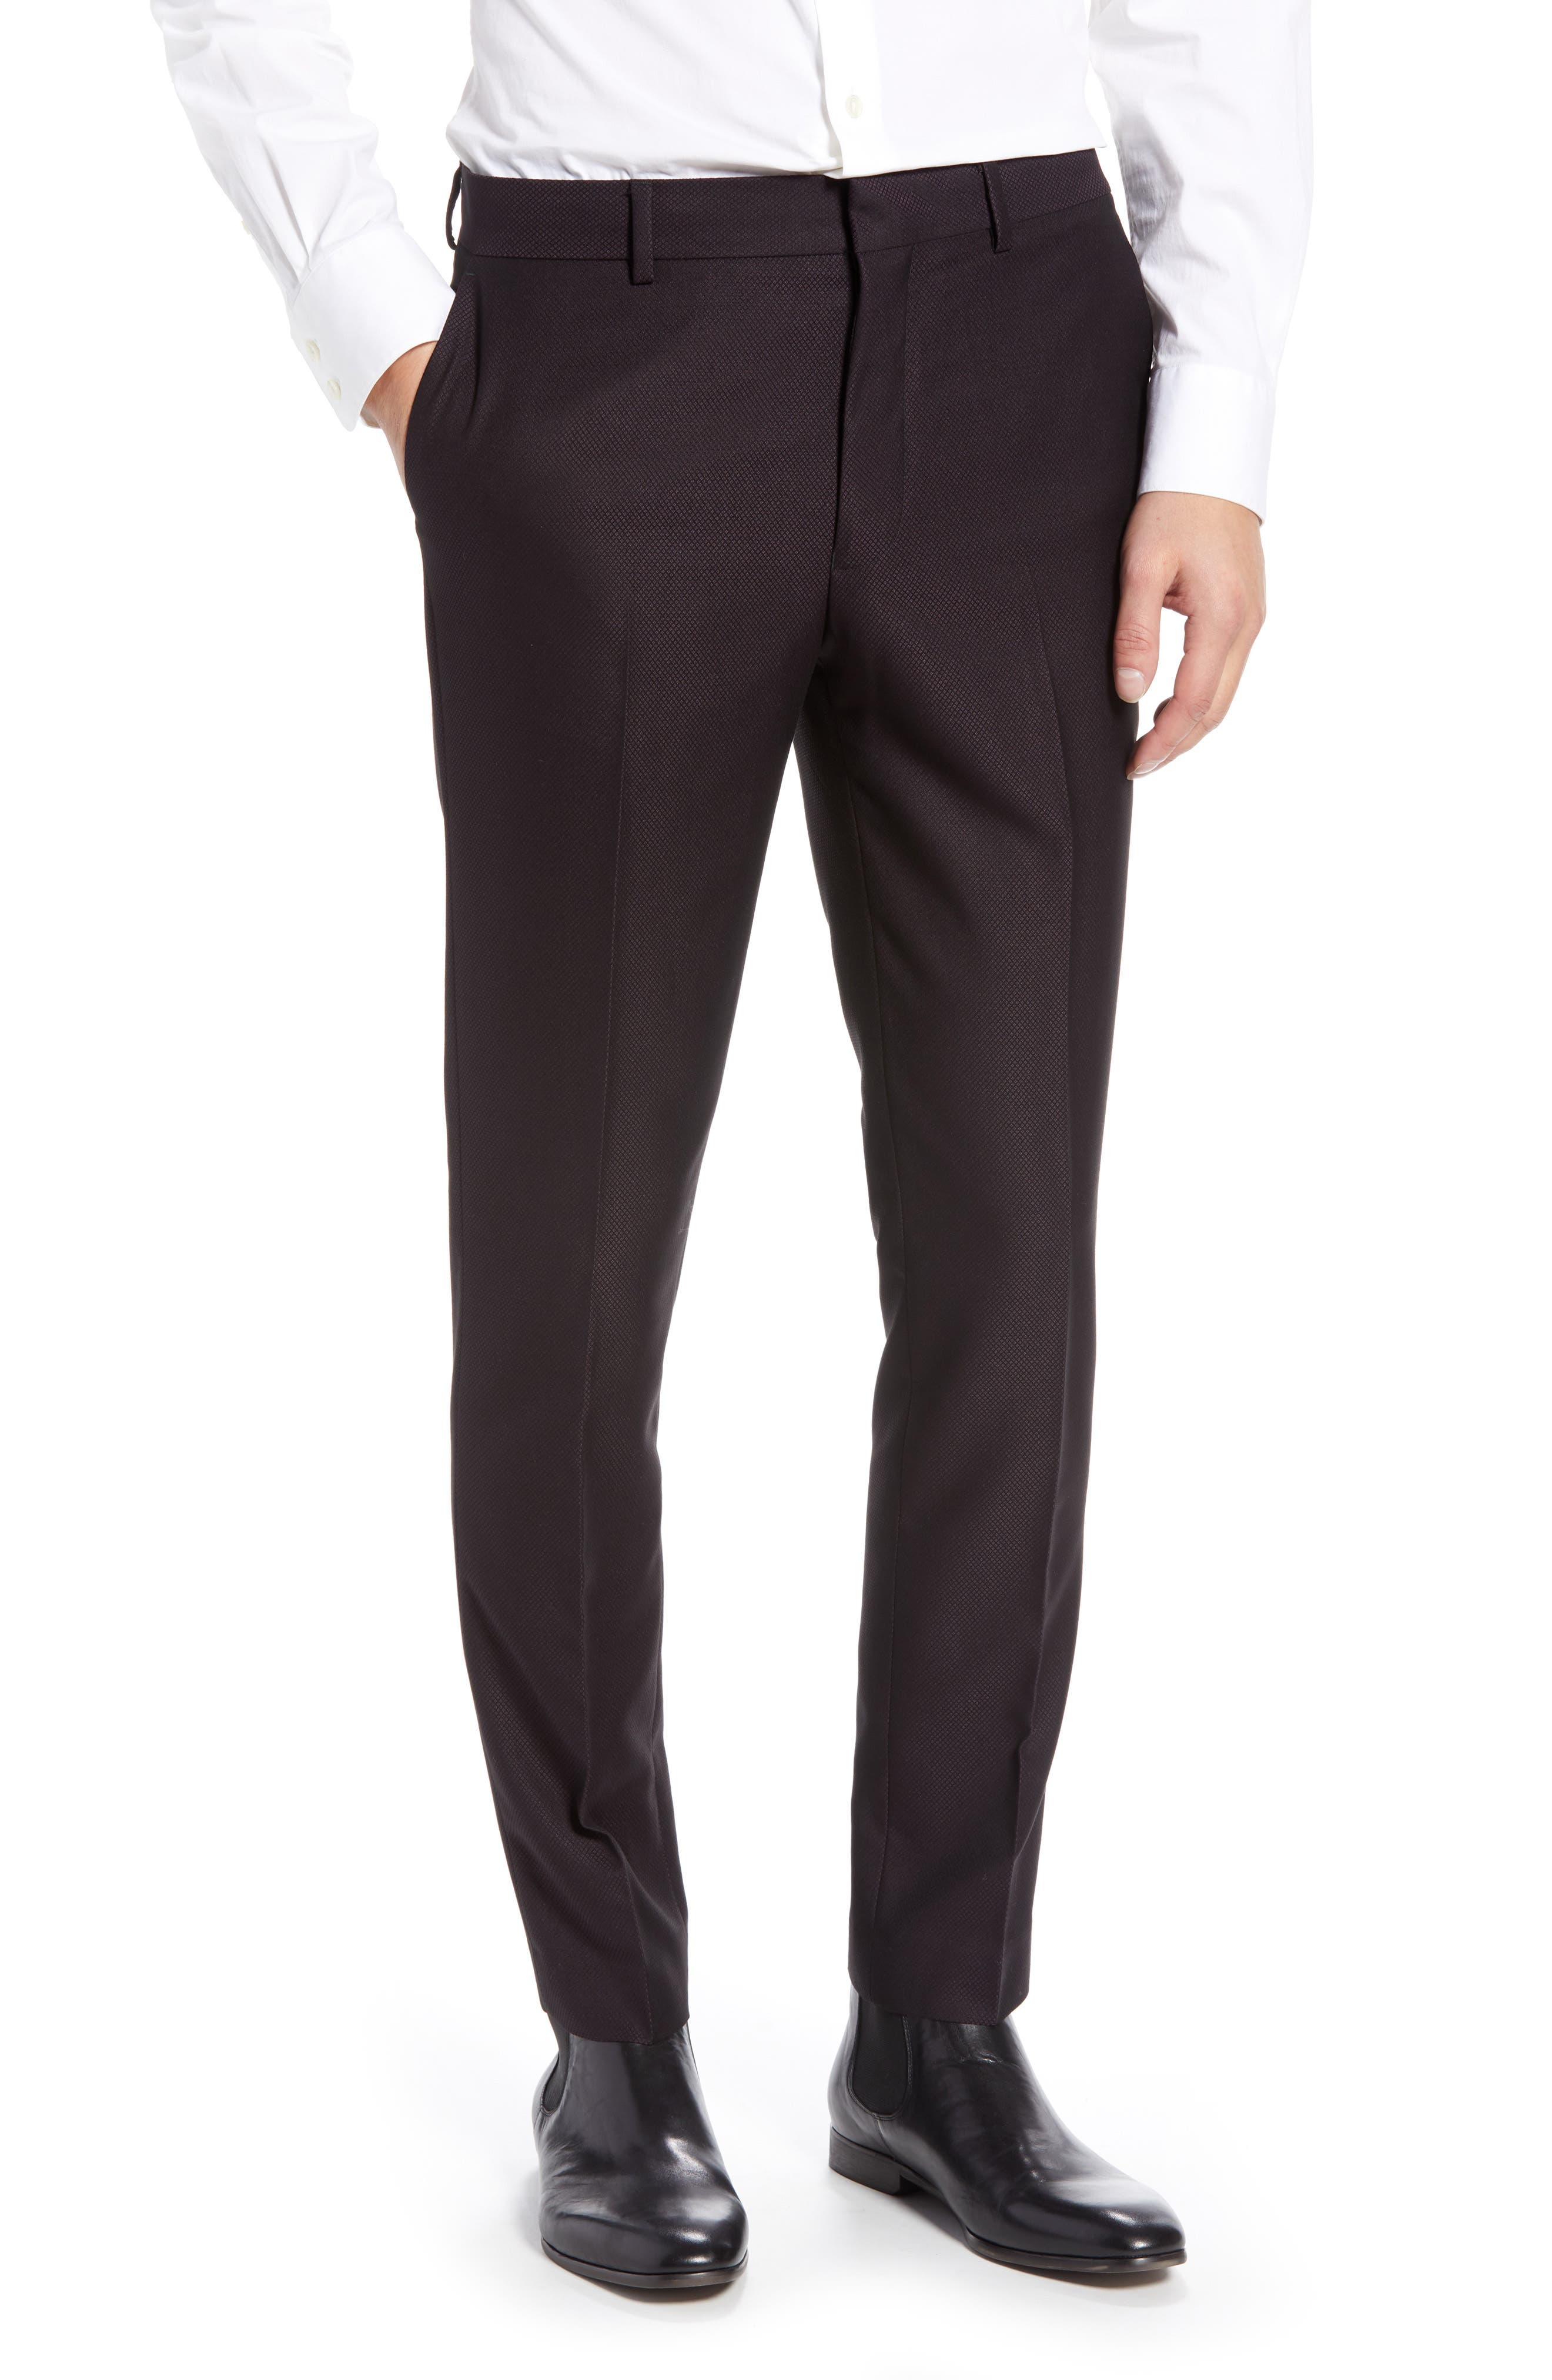 Bicester Skinny Fit Suit Pants,                             Main thumbnail 1, color,                             930